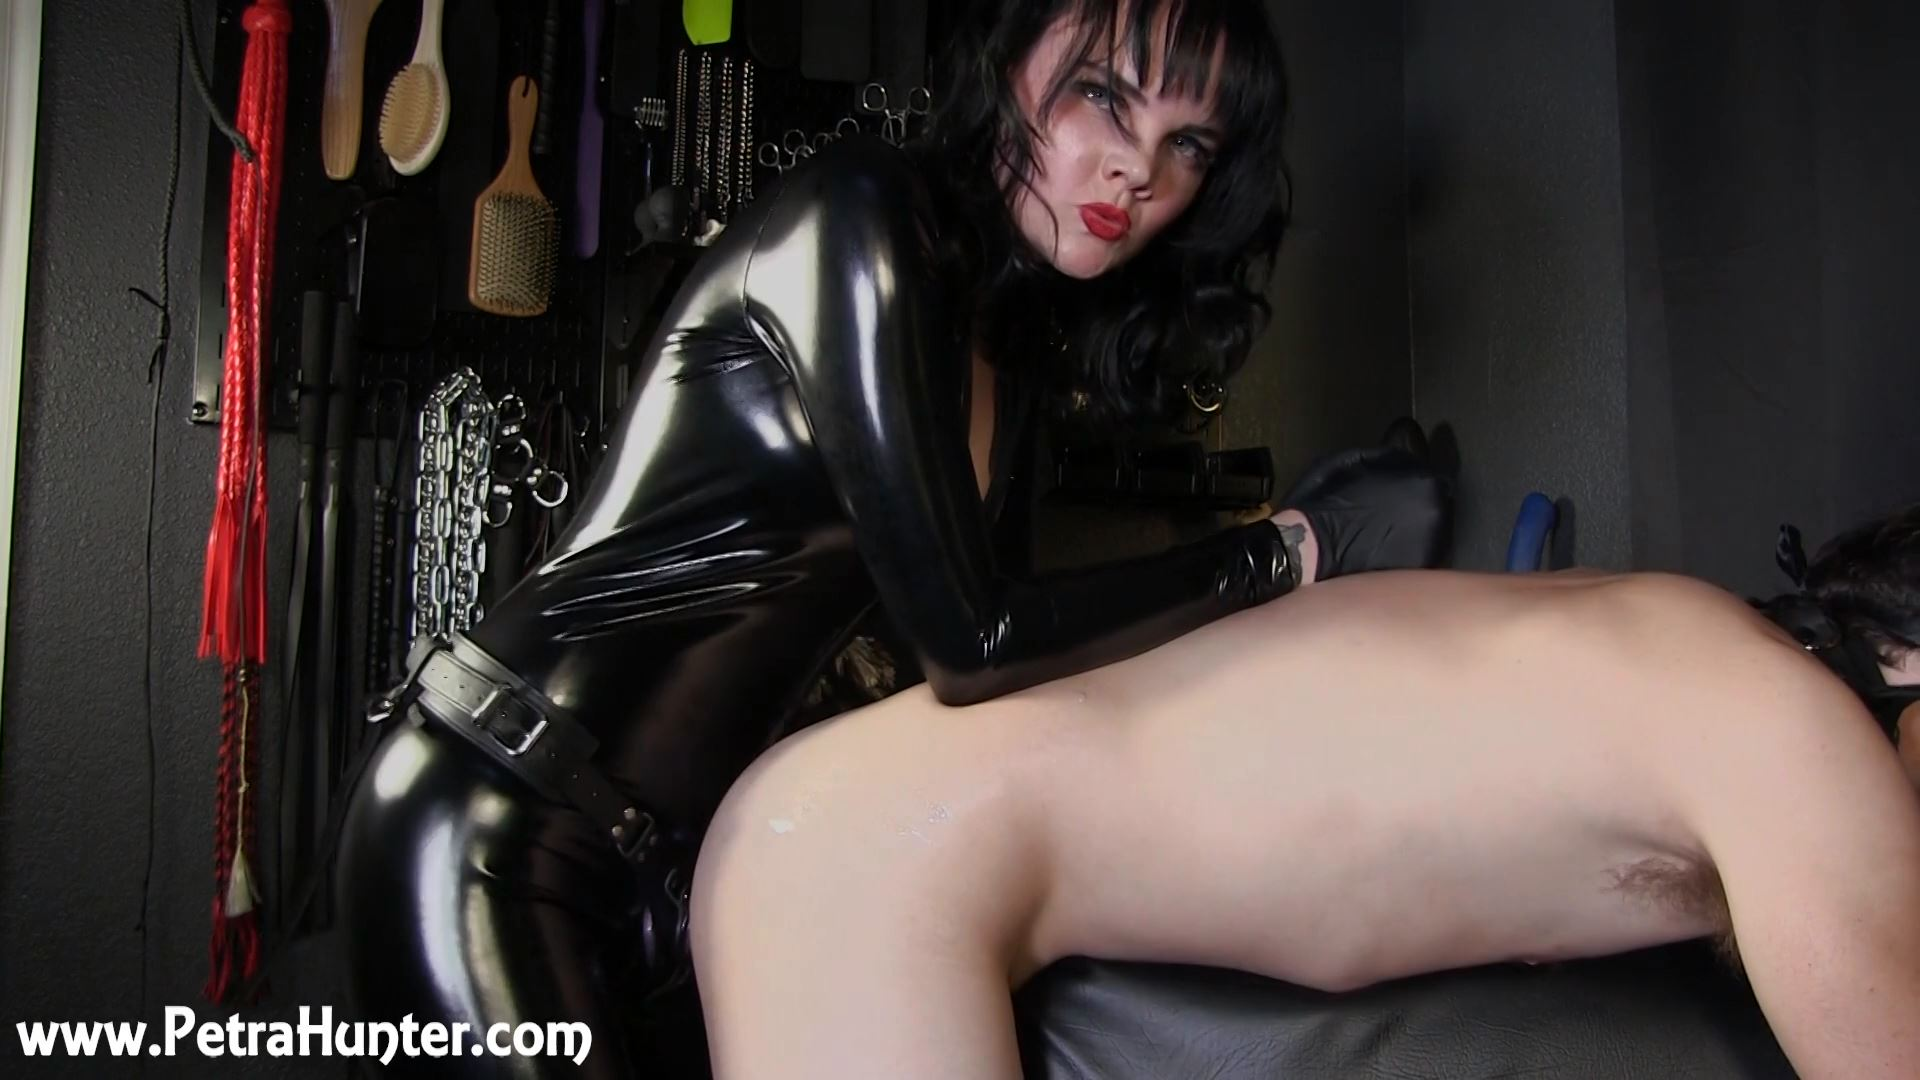 Mistress Petra Hunter In Scene: Stretched and Pegged - STREAMPETRA - FULL HD/1080p/MP4